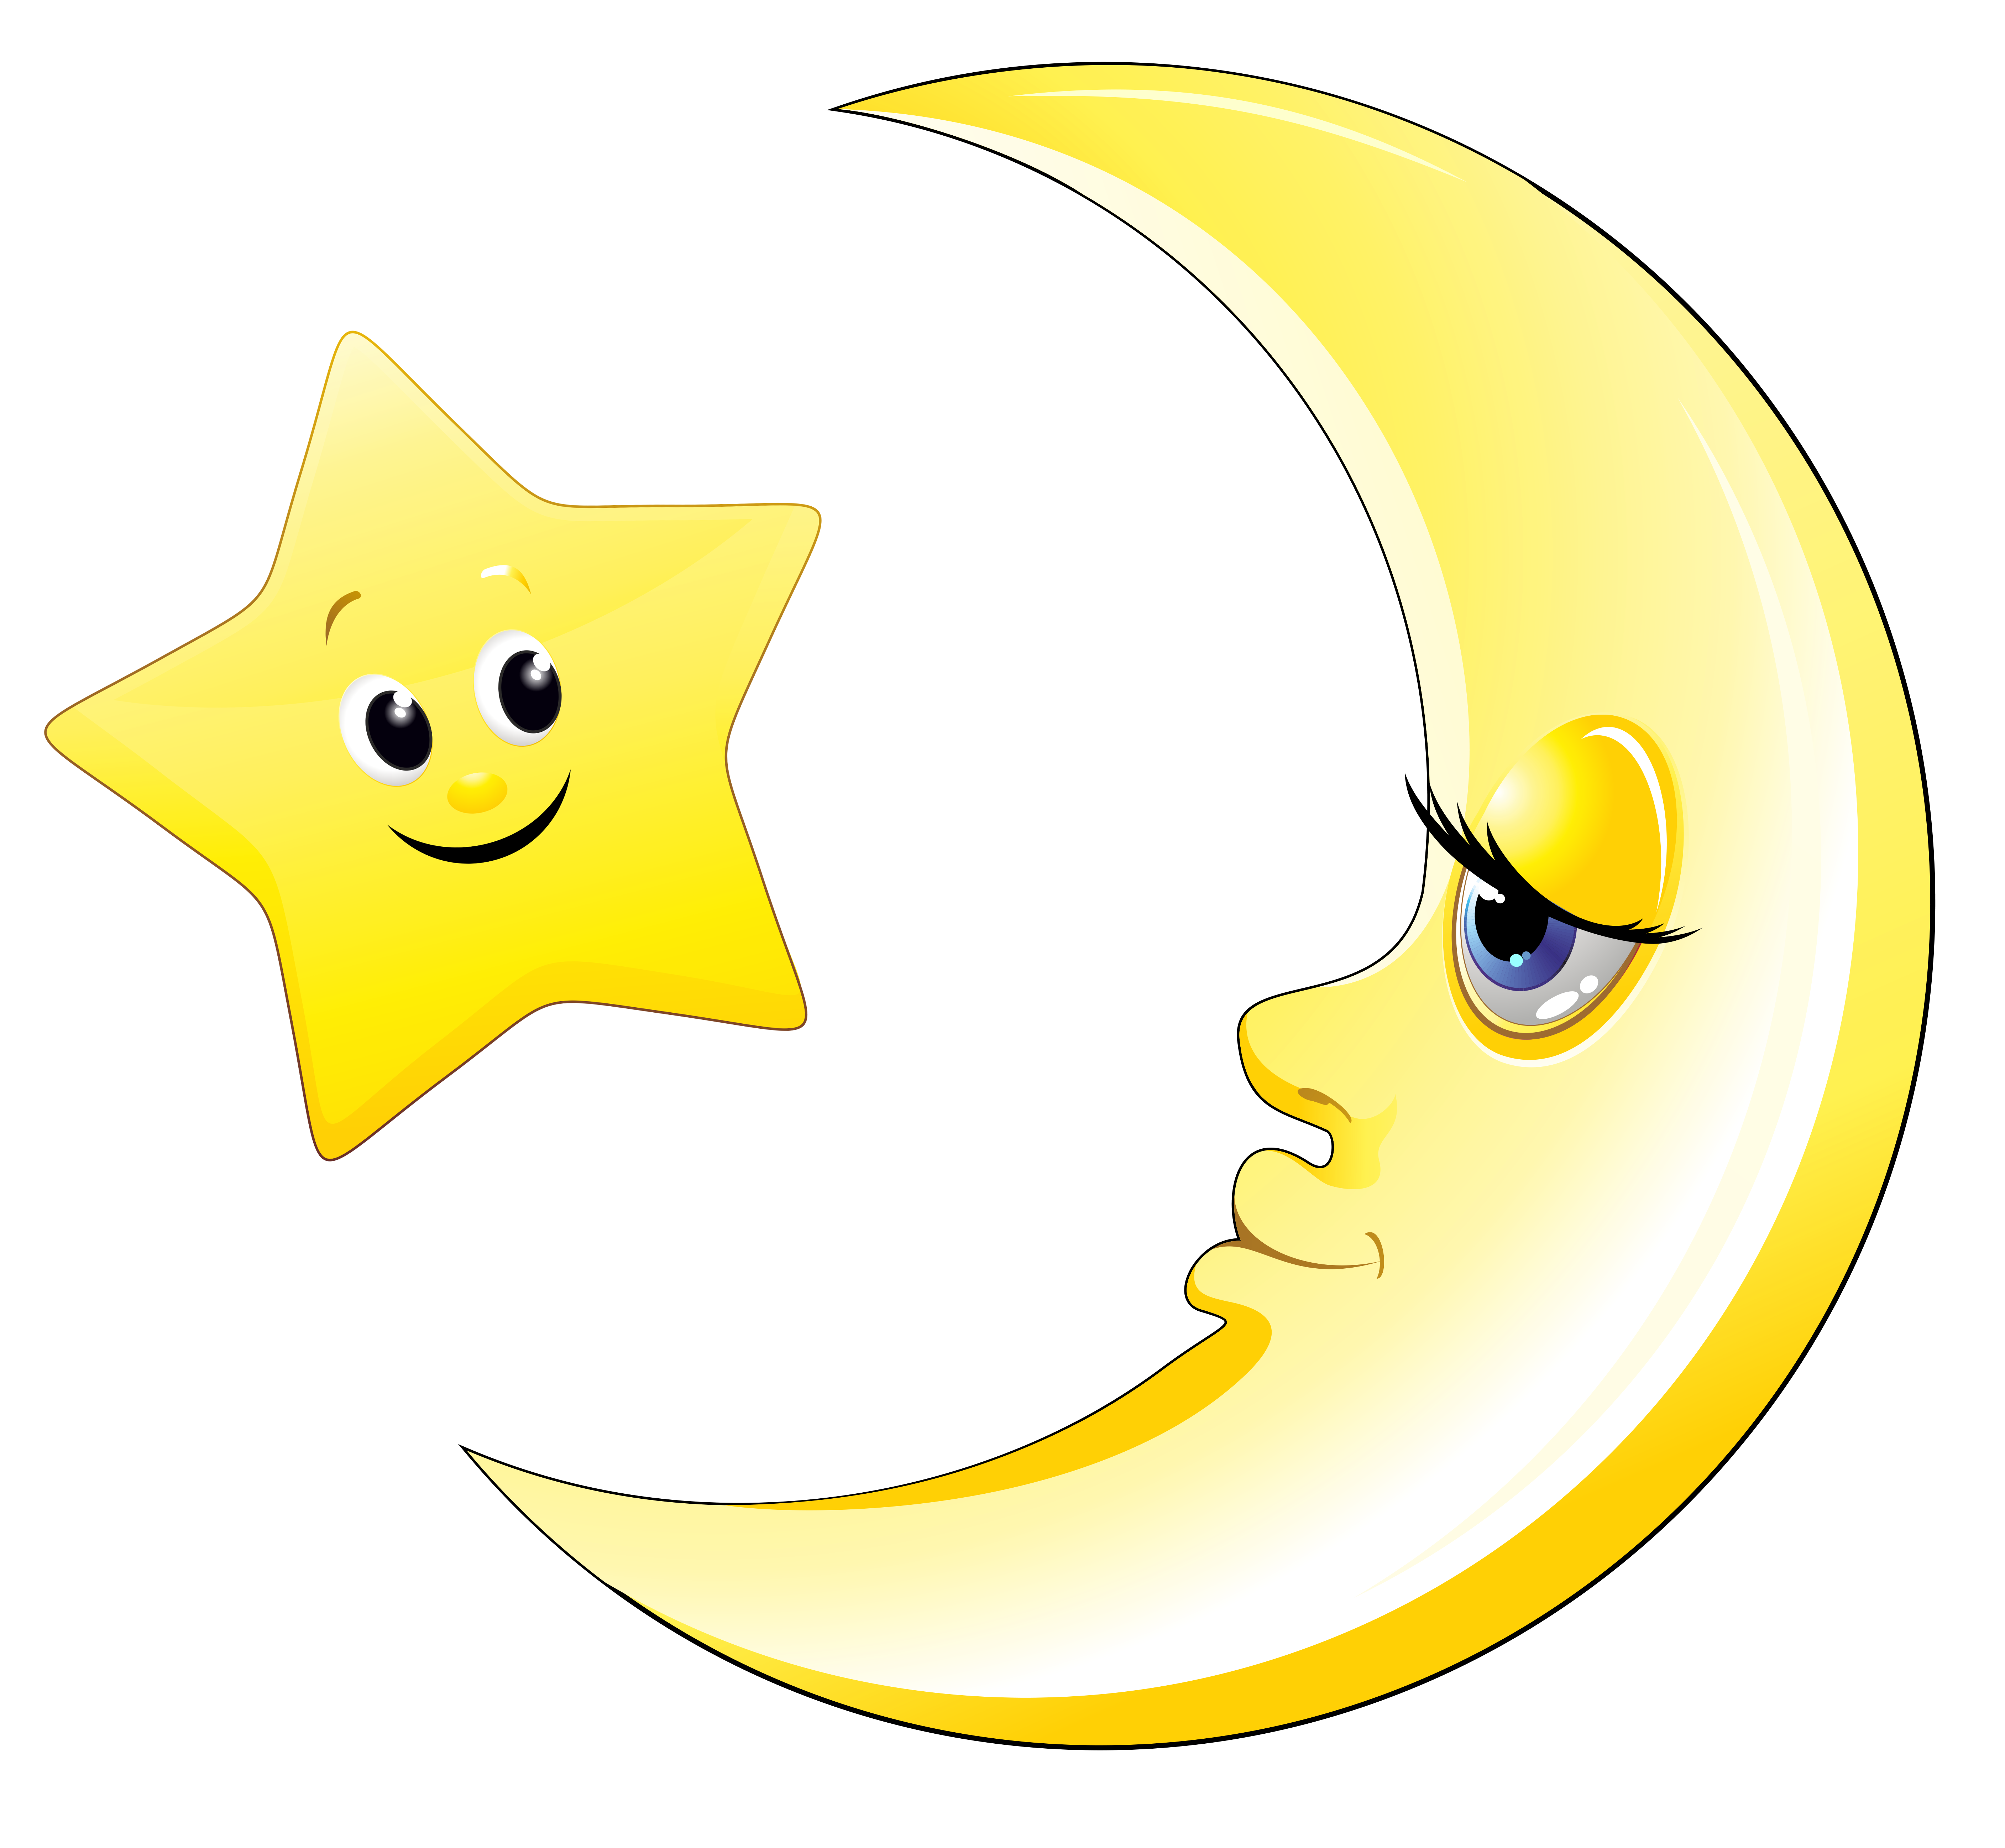 Transparent cute moon and star clipart picture 7 clipartcow